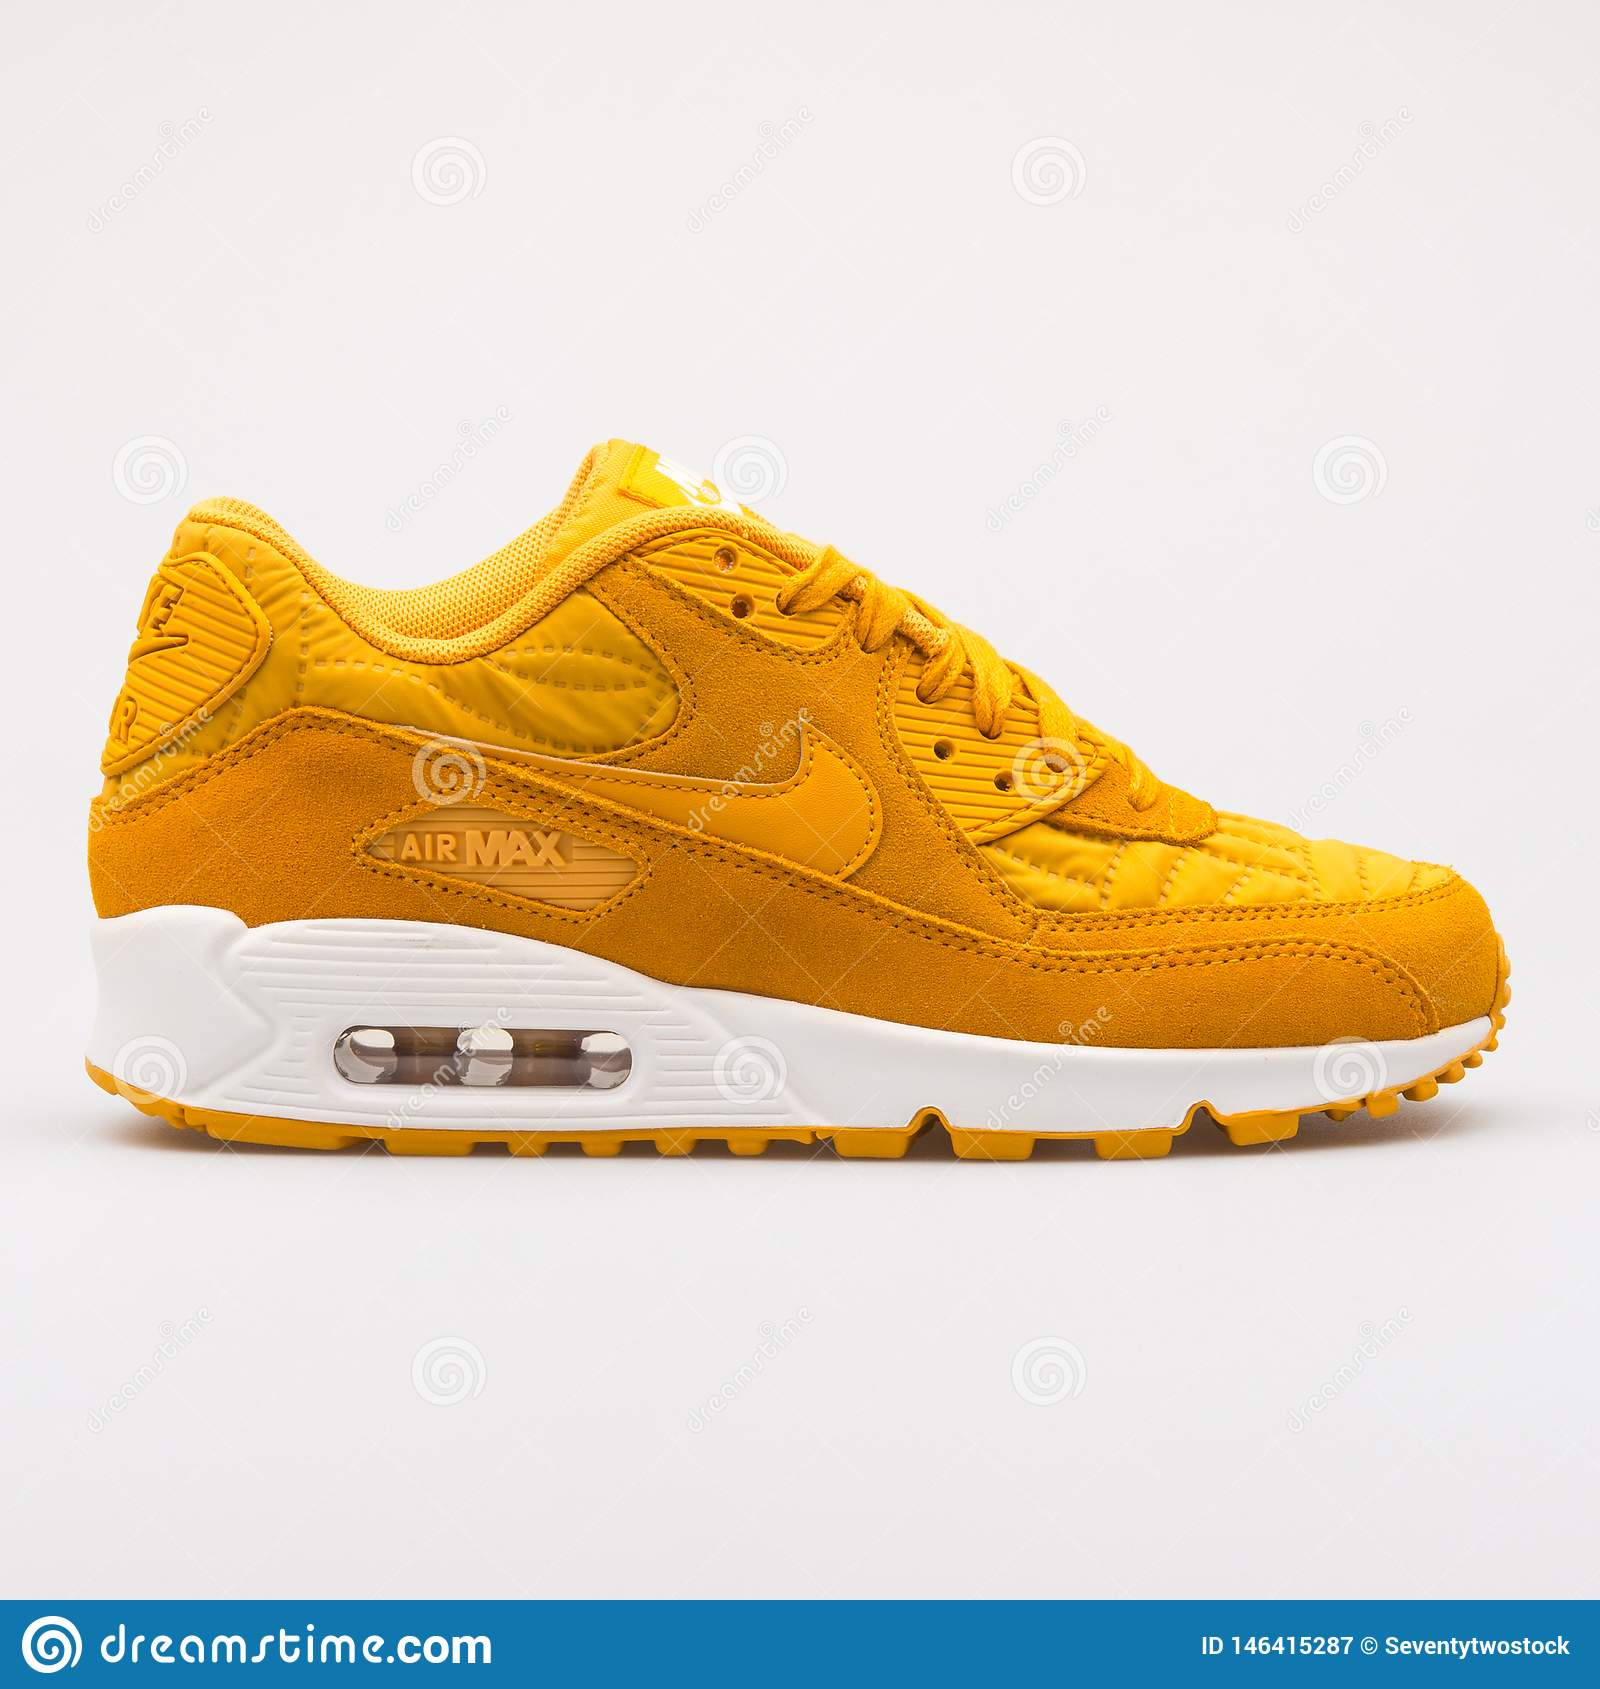 Nike Air Max 90 Premium Gold Sneaker Editorial Photography